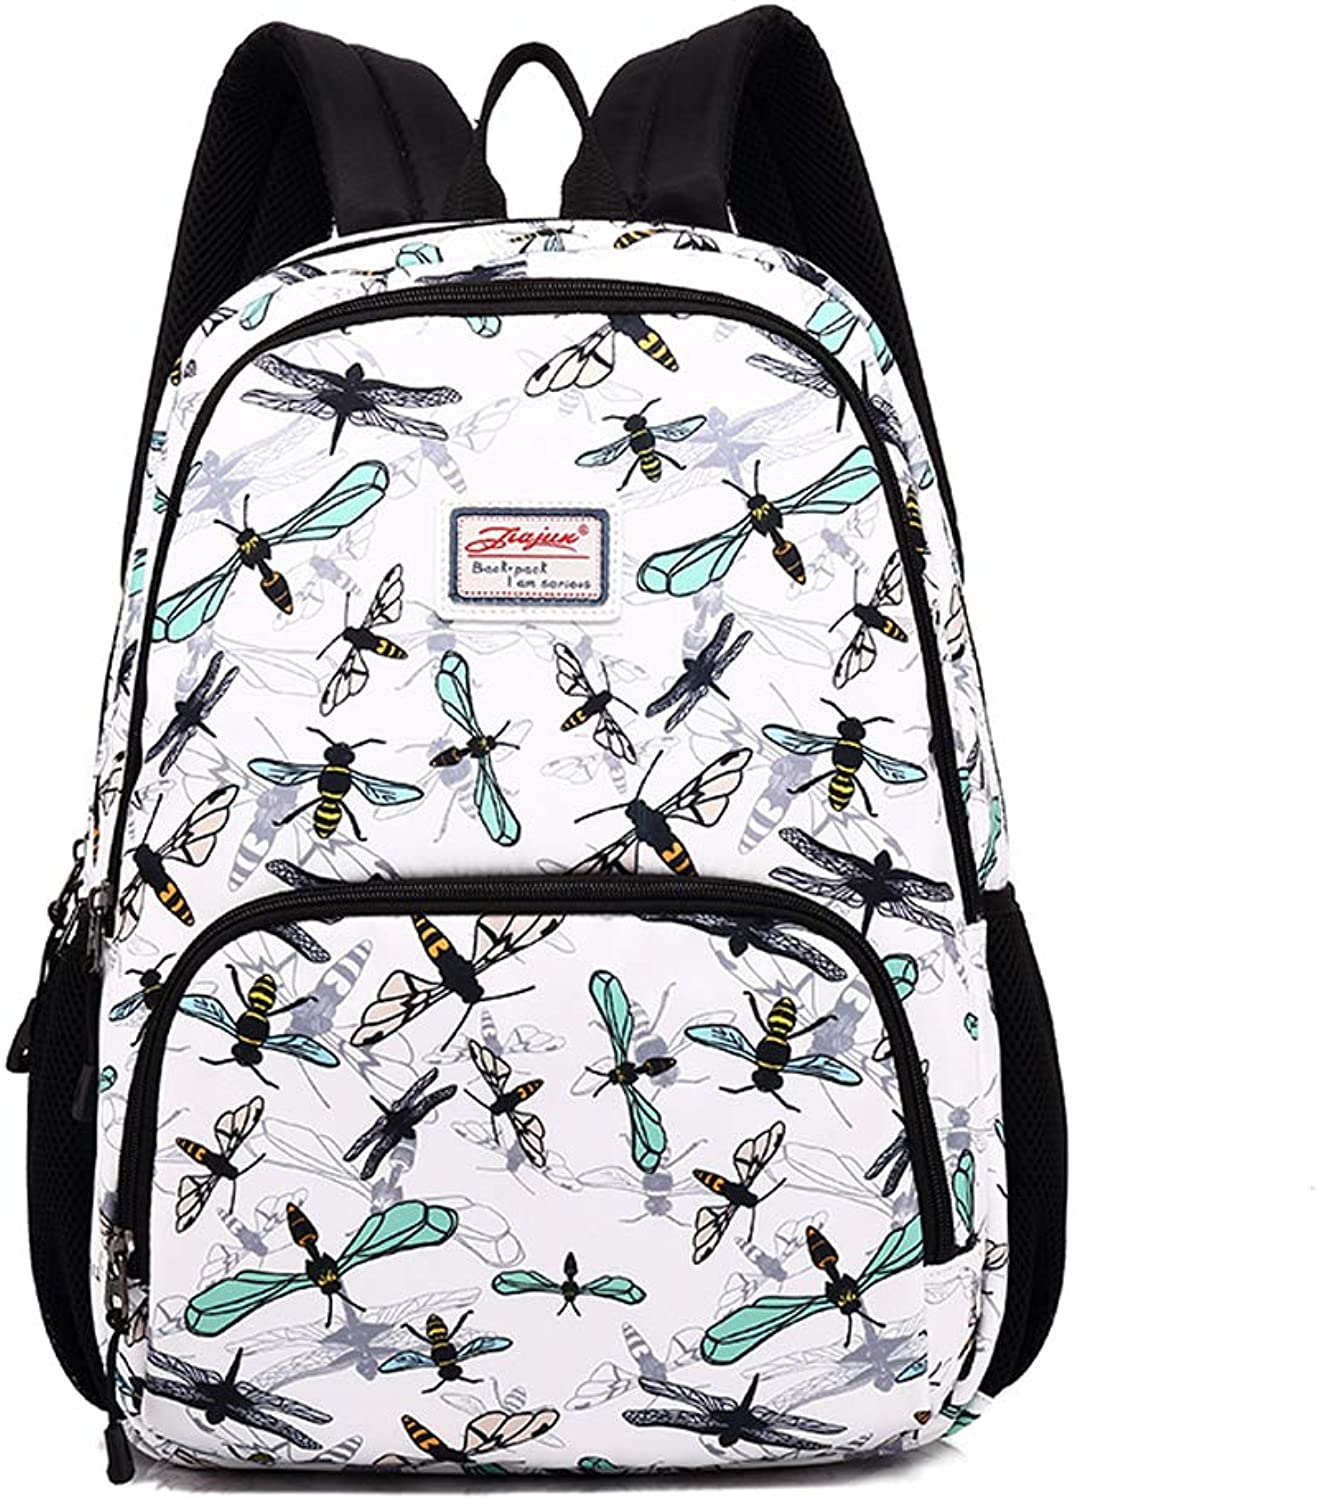 Backpack Korean fashion trend junior high school students college bags men and women leisure travel computer backpack